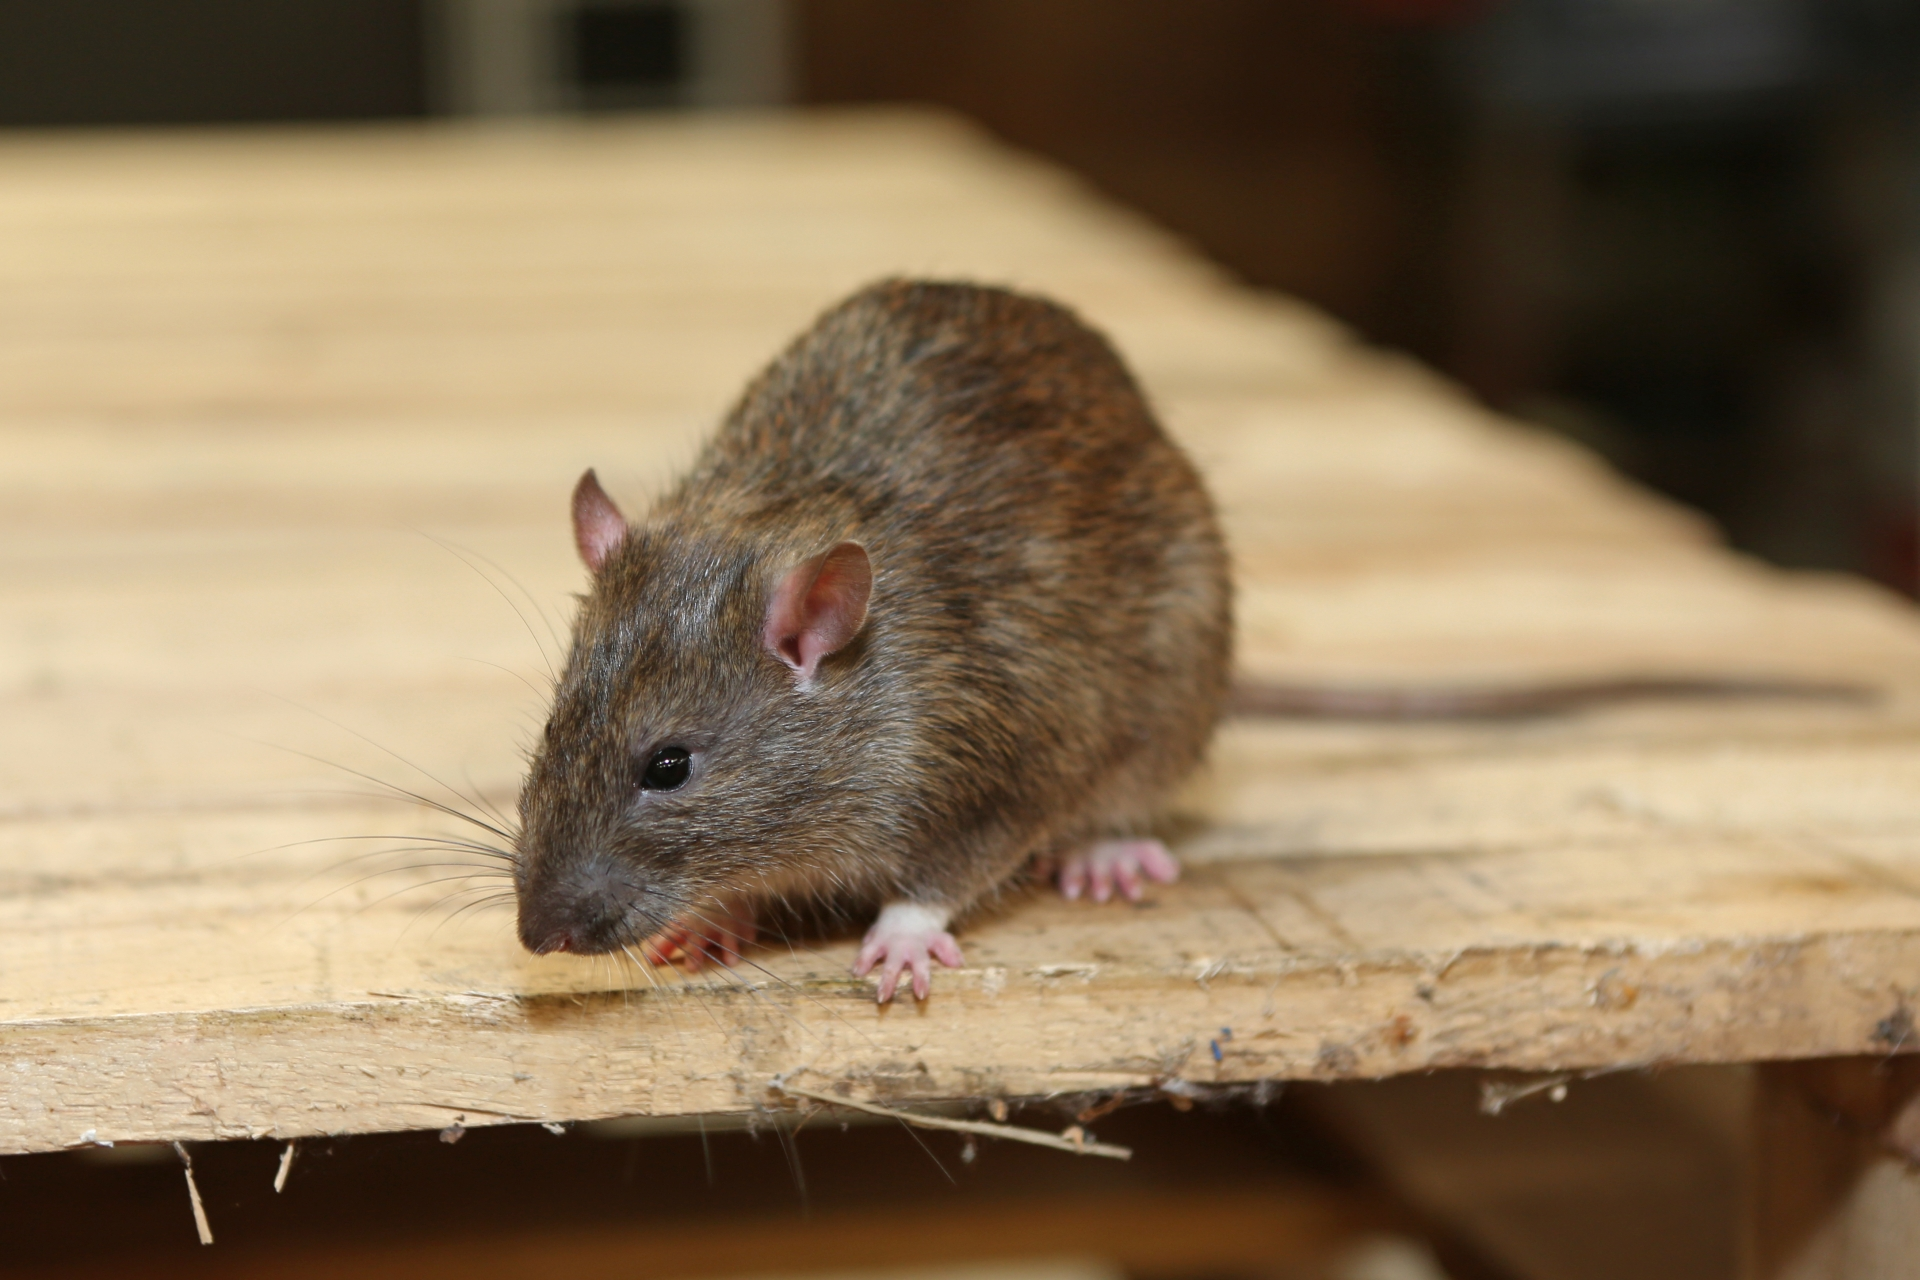 Rat Infestation, Pest Control in Falconwood, Welling, DA16. Call Now 020 8166 9746